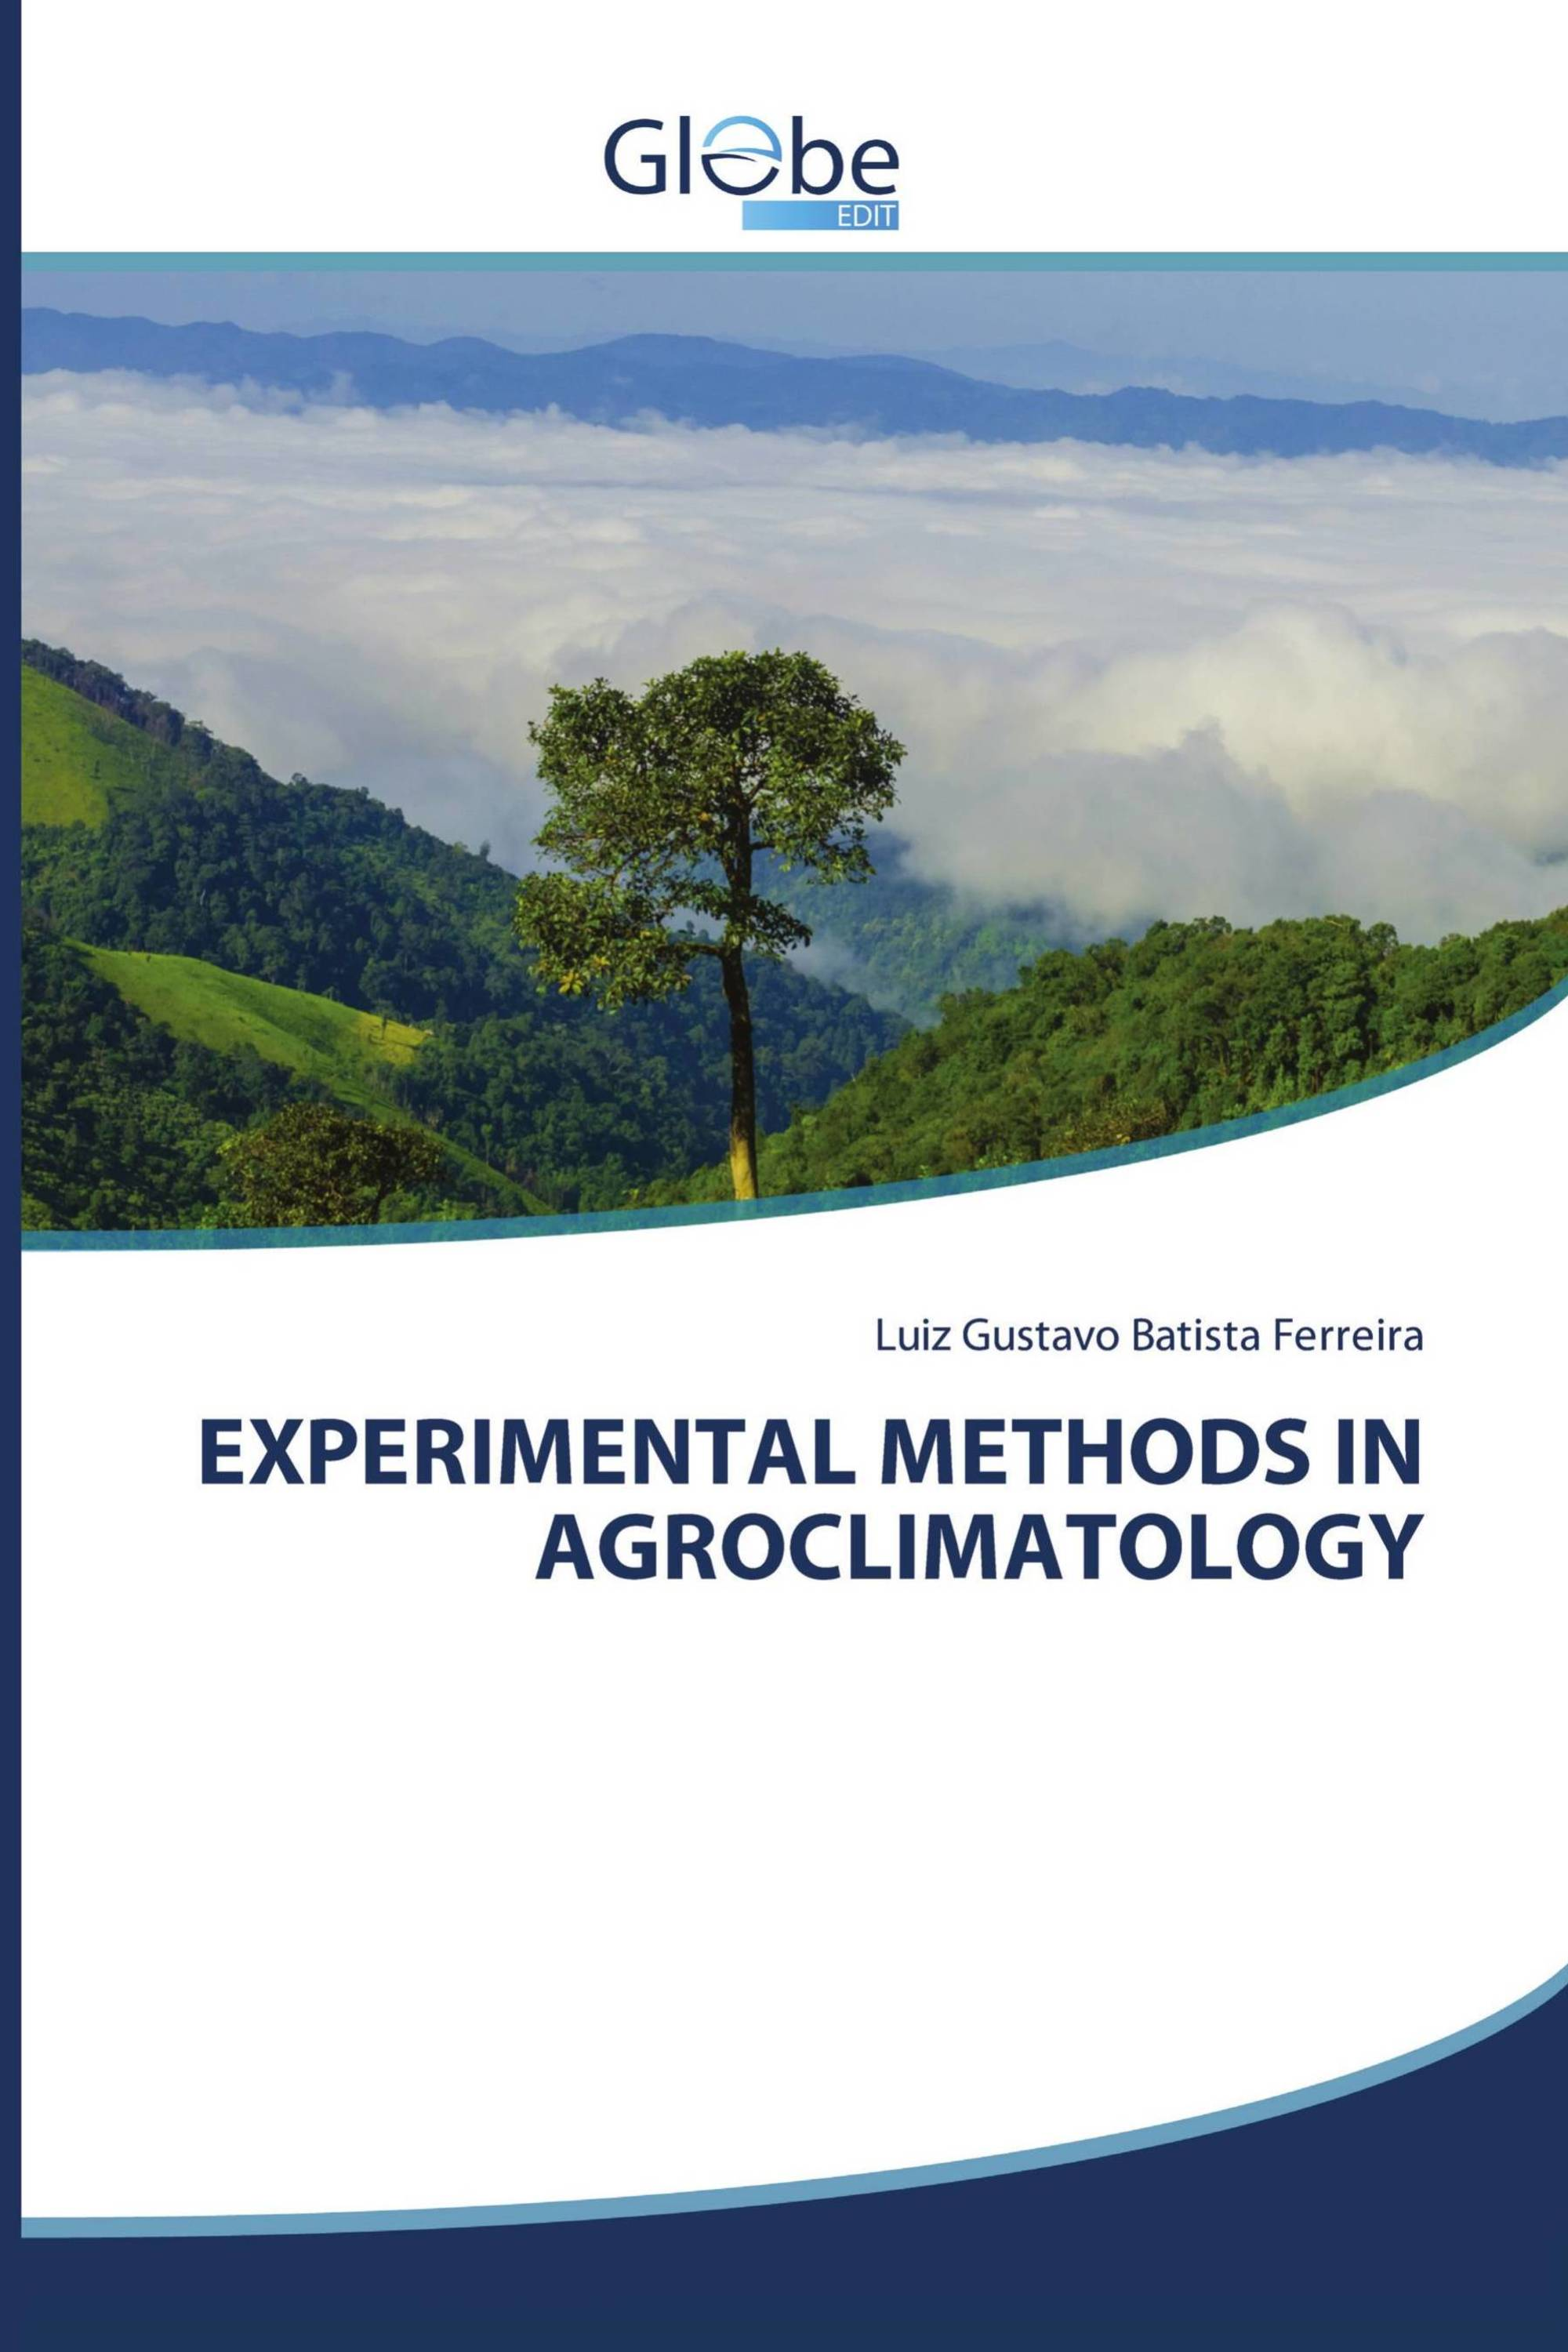 EXPERIMENTAL METHODS IN AGROCLIMATOLOGY